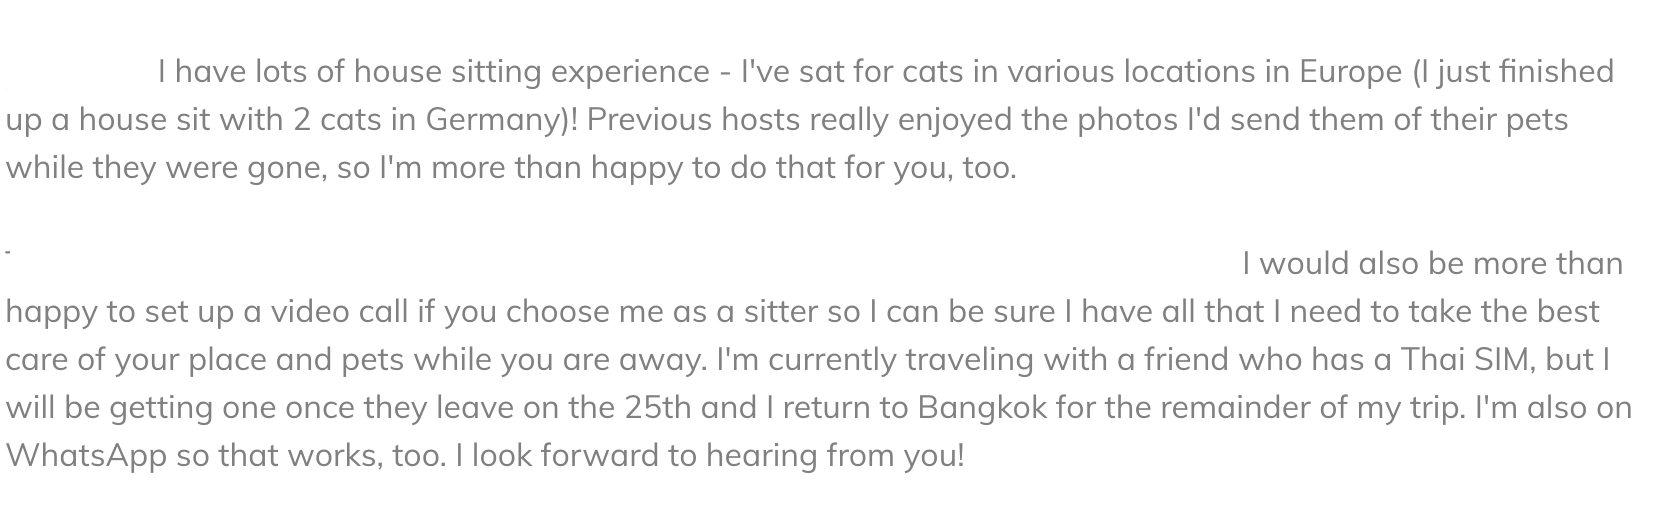 Example of part of a House sitting message - what to say to someone you want to house sit for!